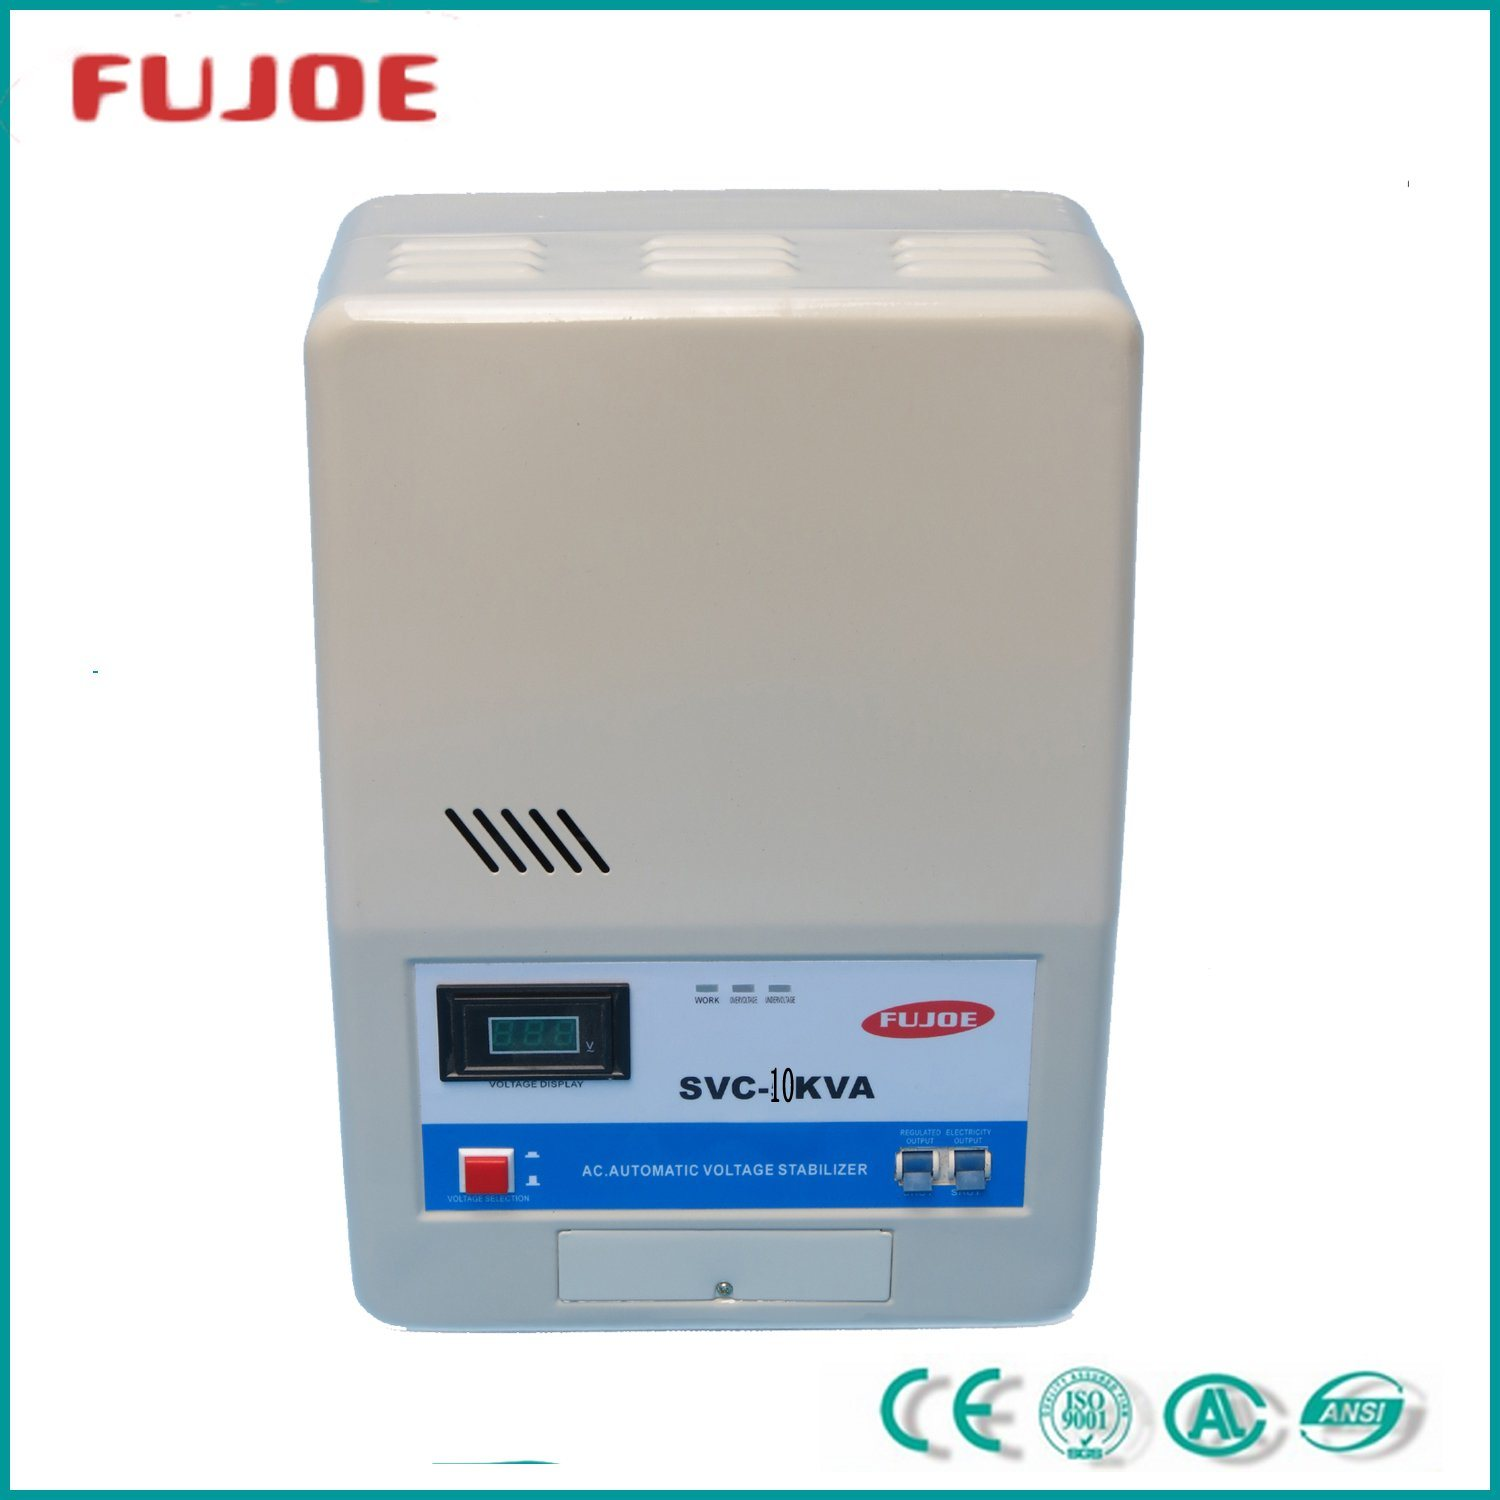 SVC-10000va AC Current Generator Voltage Stabilizer Regulator